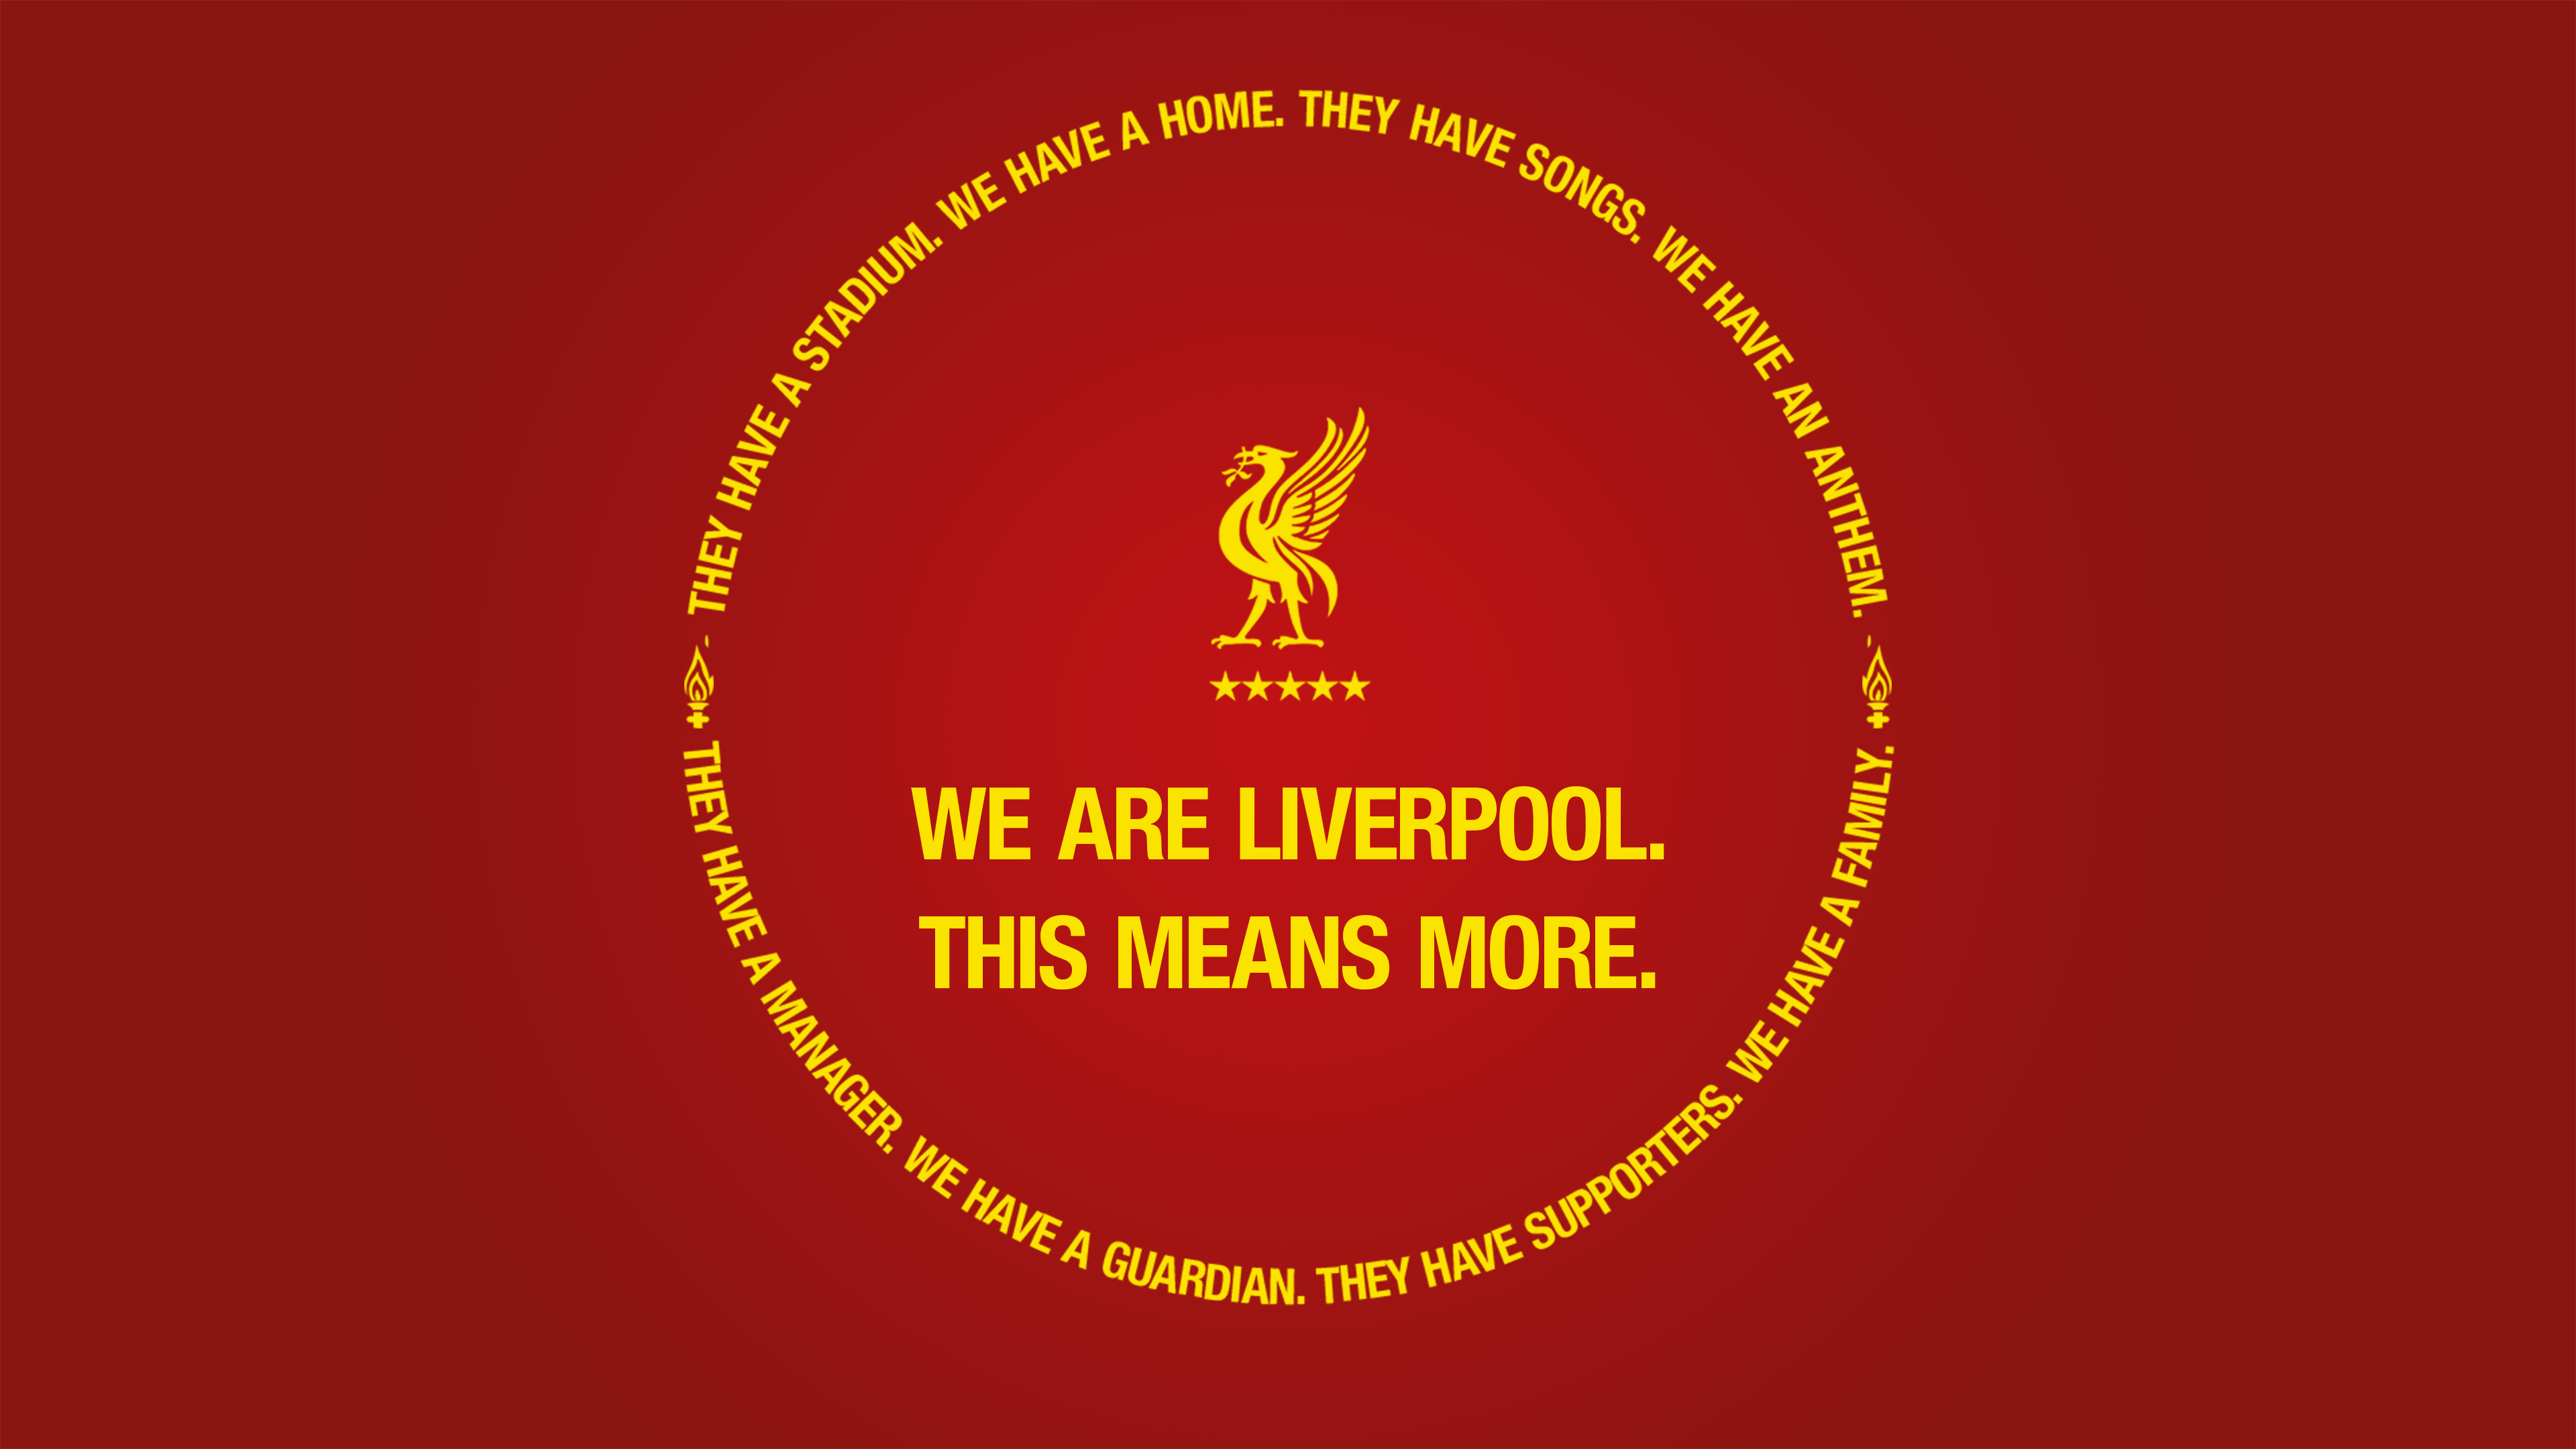 Liverpool Fc 4k Wallpaper We Are Liverpool This Means More Motto Sports 195